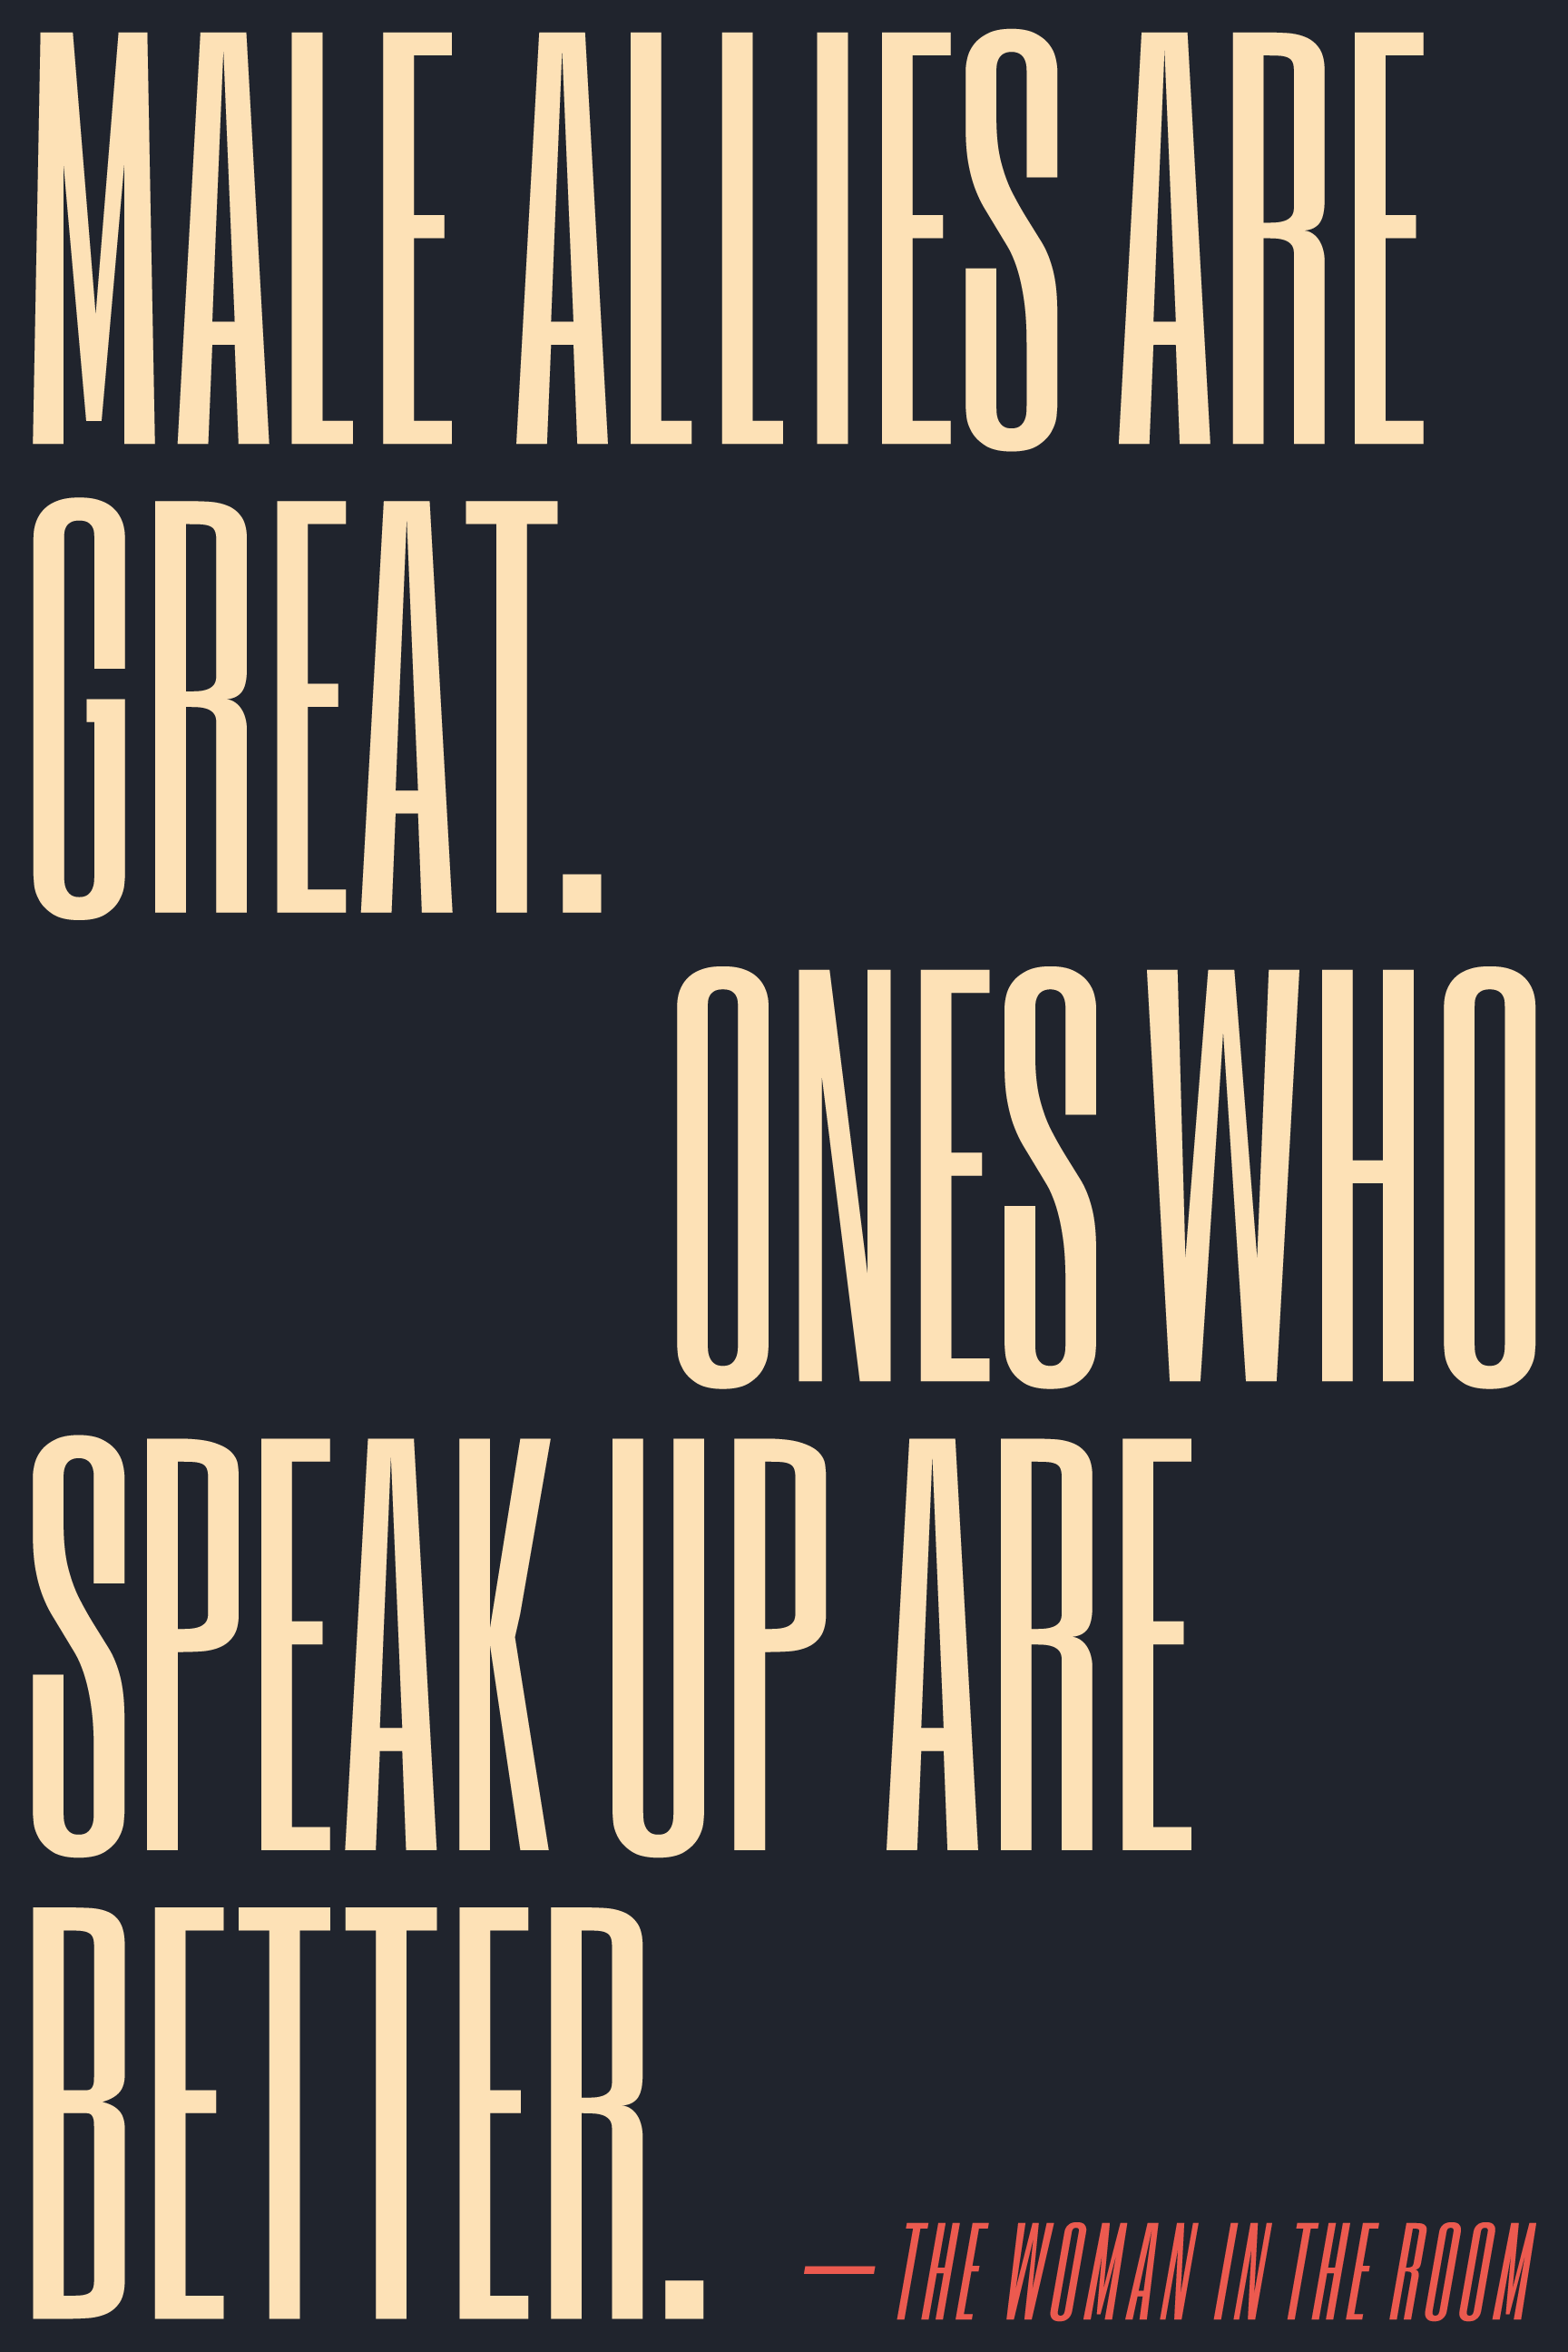 Male allies are great. Ones who speak up are better.